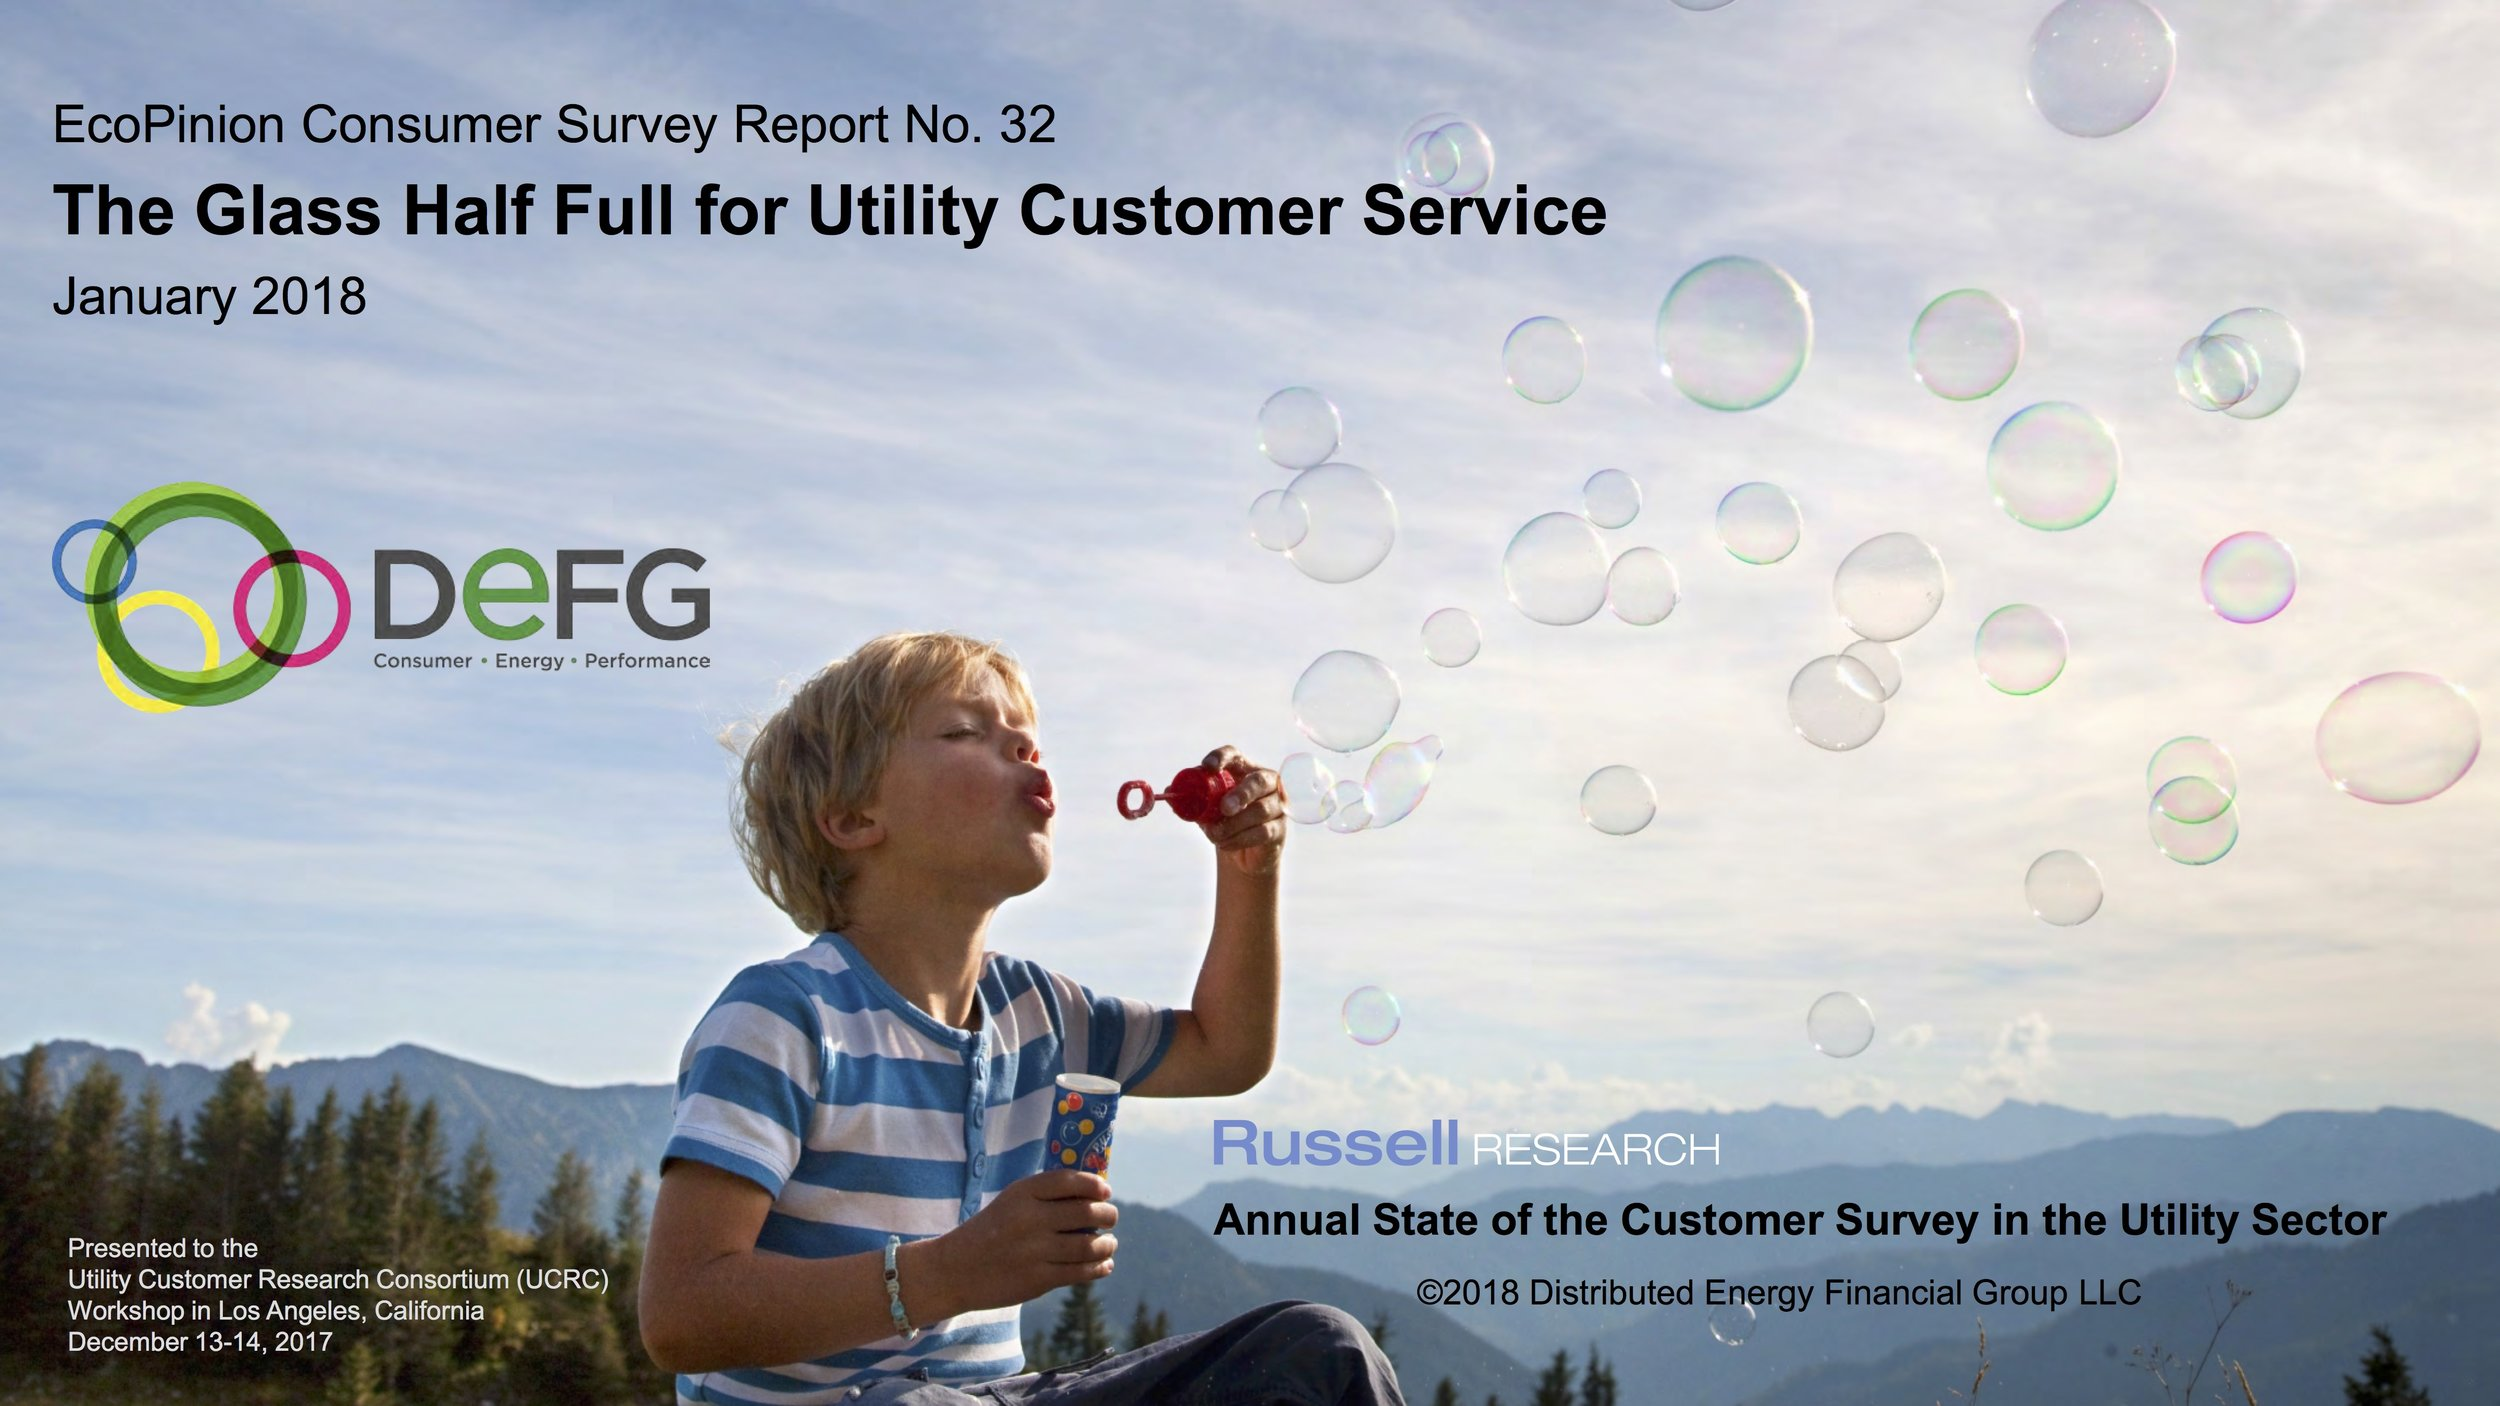 The Glass Half Full for Utility Consumer Service   EcoPinion Consumer Survey Report #32